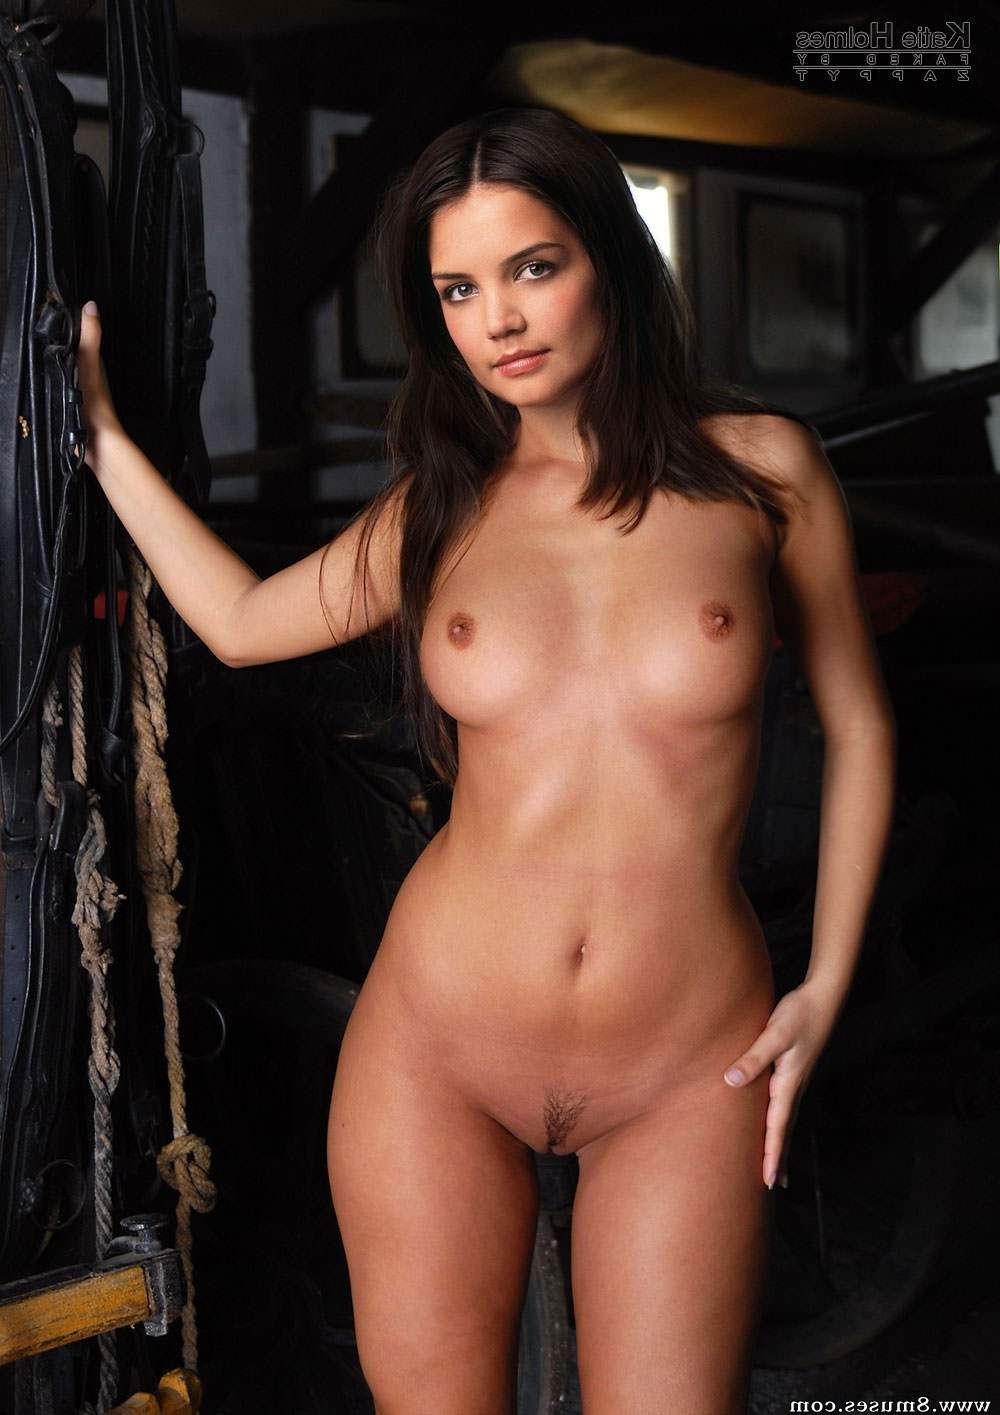 Fake-Celebrities-Sex-Pictures/Katie-Holmes Katie_Holmes__8muses_-_Sex_and_Porn_Comics_45.jpg